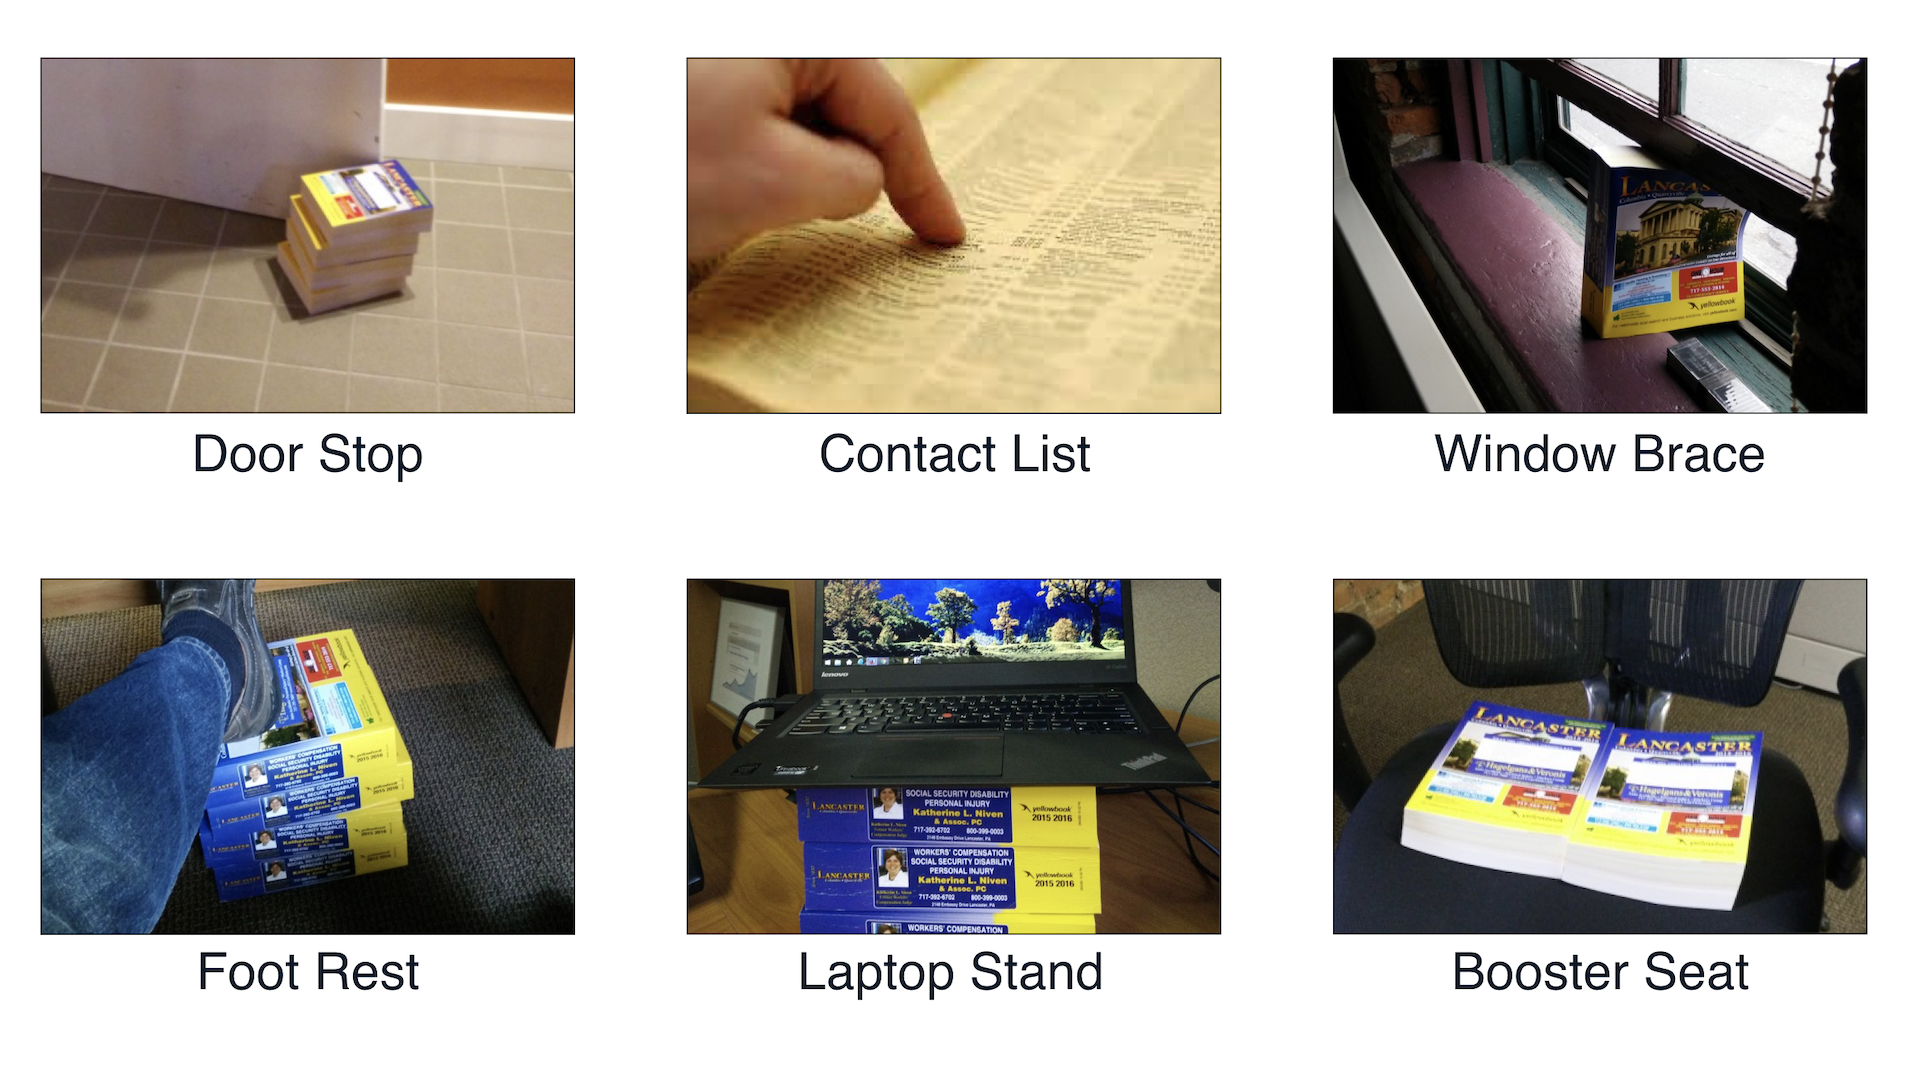 Six images displaying different uses for a phone book. Door stop, contact list, window brace, foot rest, laptop stand, and booster seat.